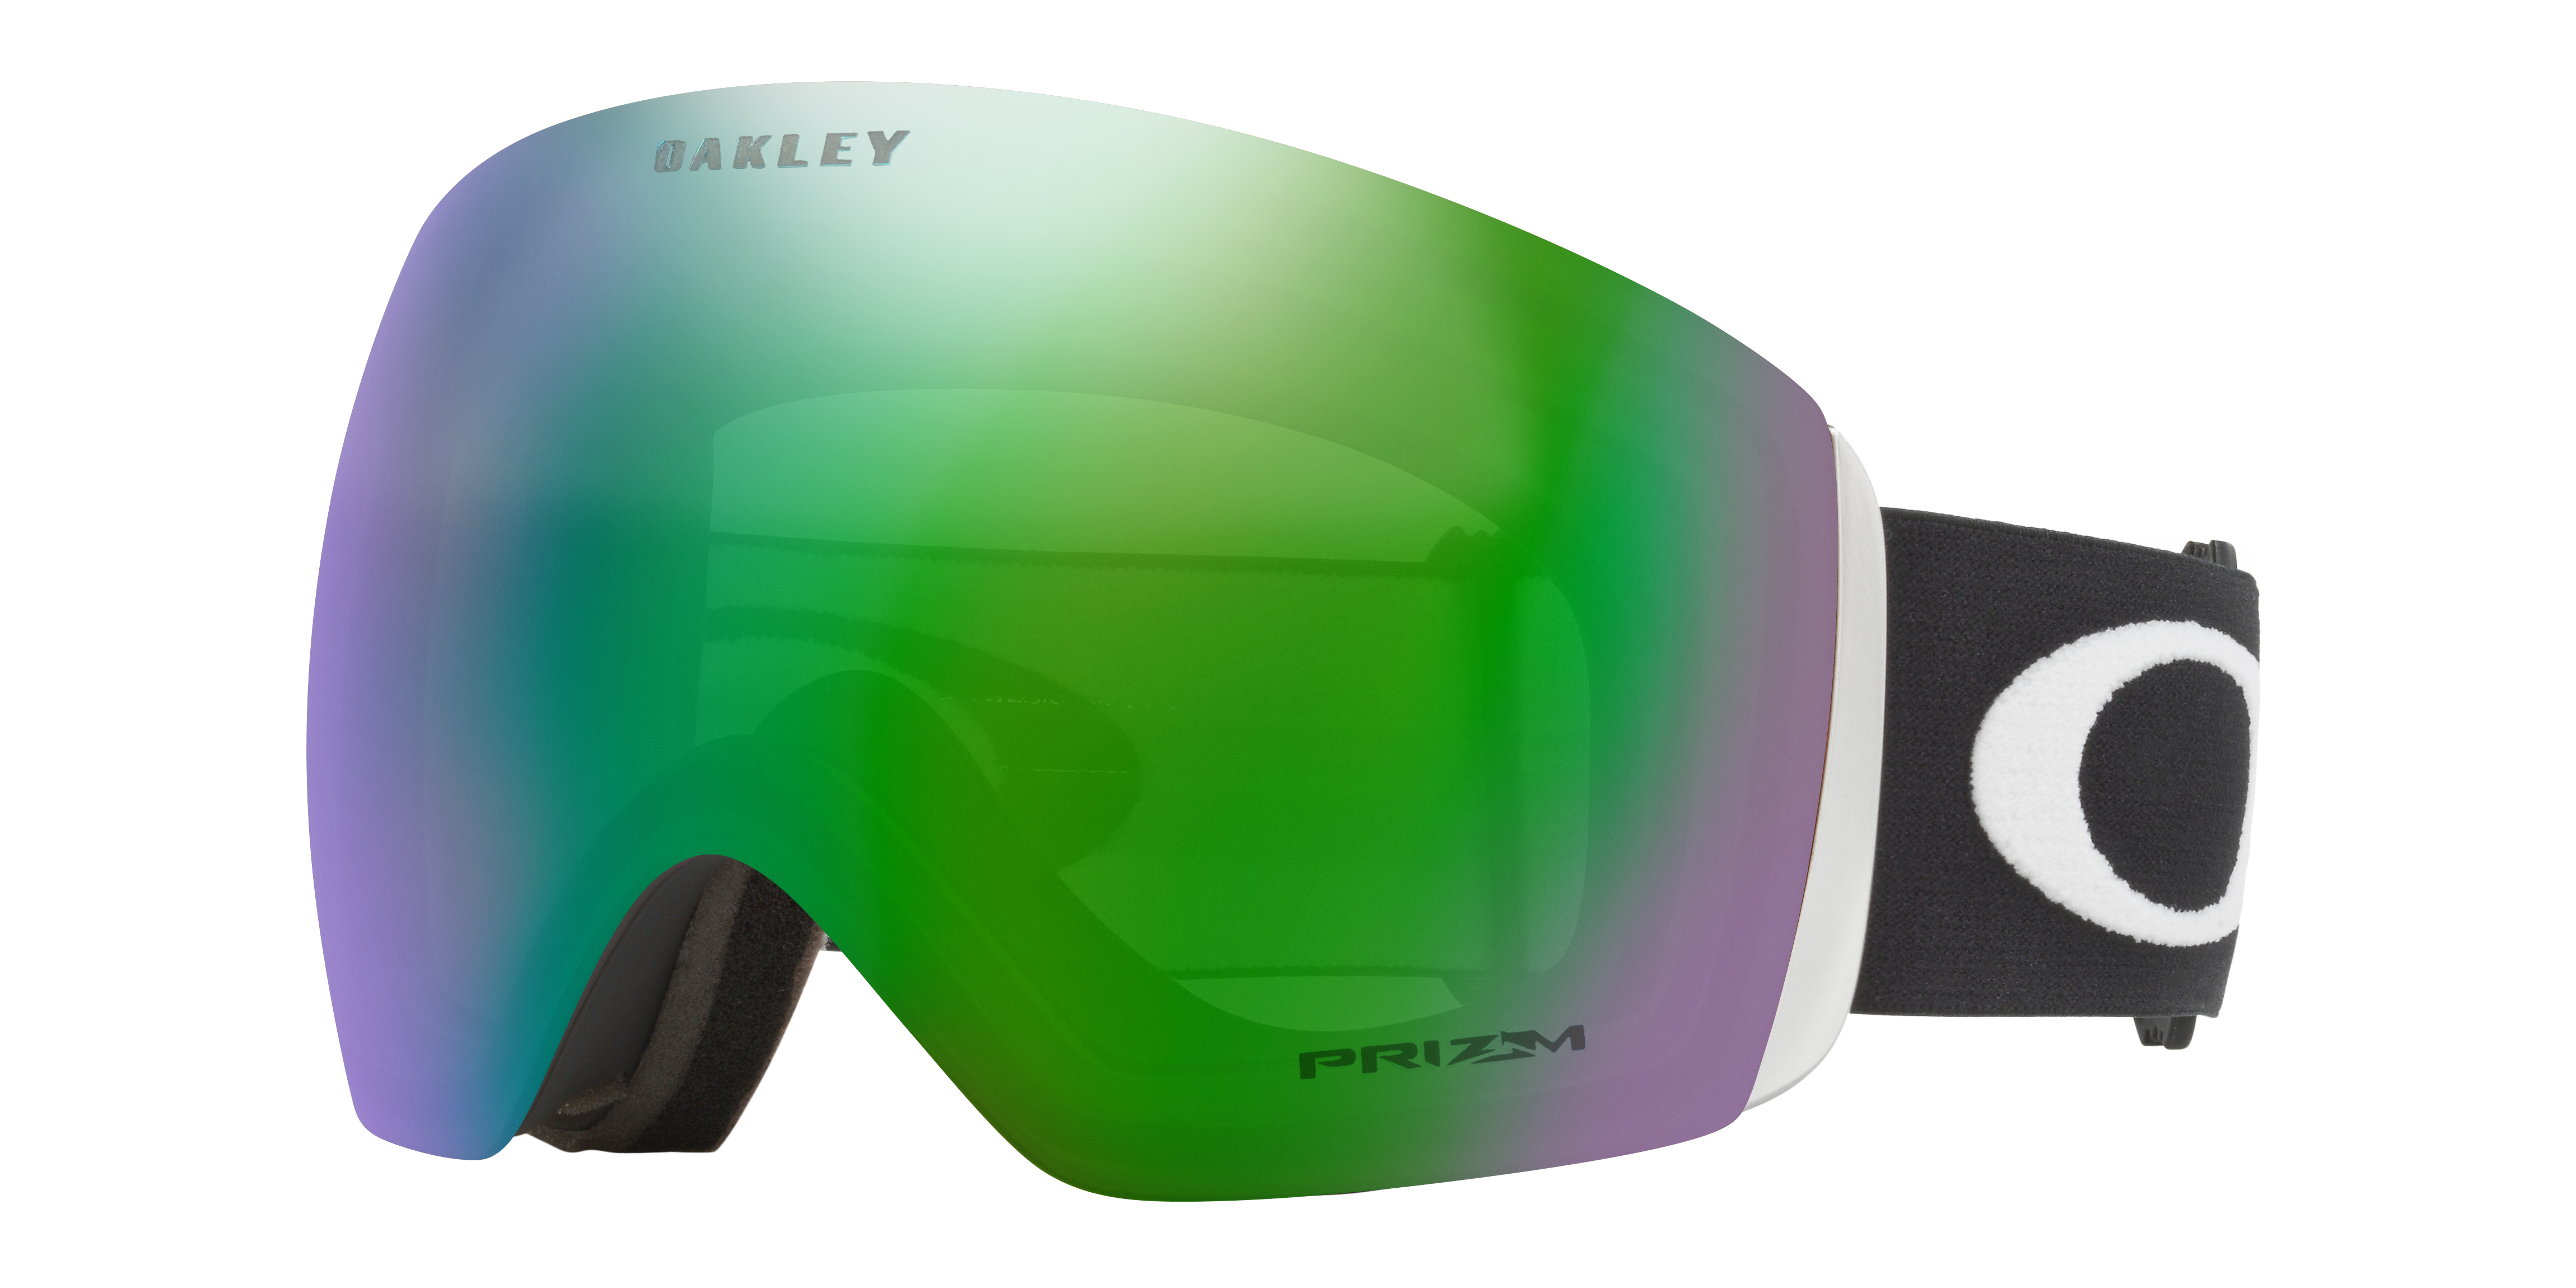 OAKLEY MASCHERA FLIGHT DECK XL (705089) - 2021